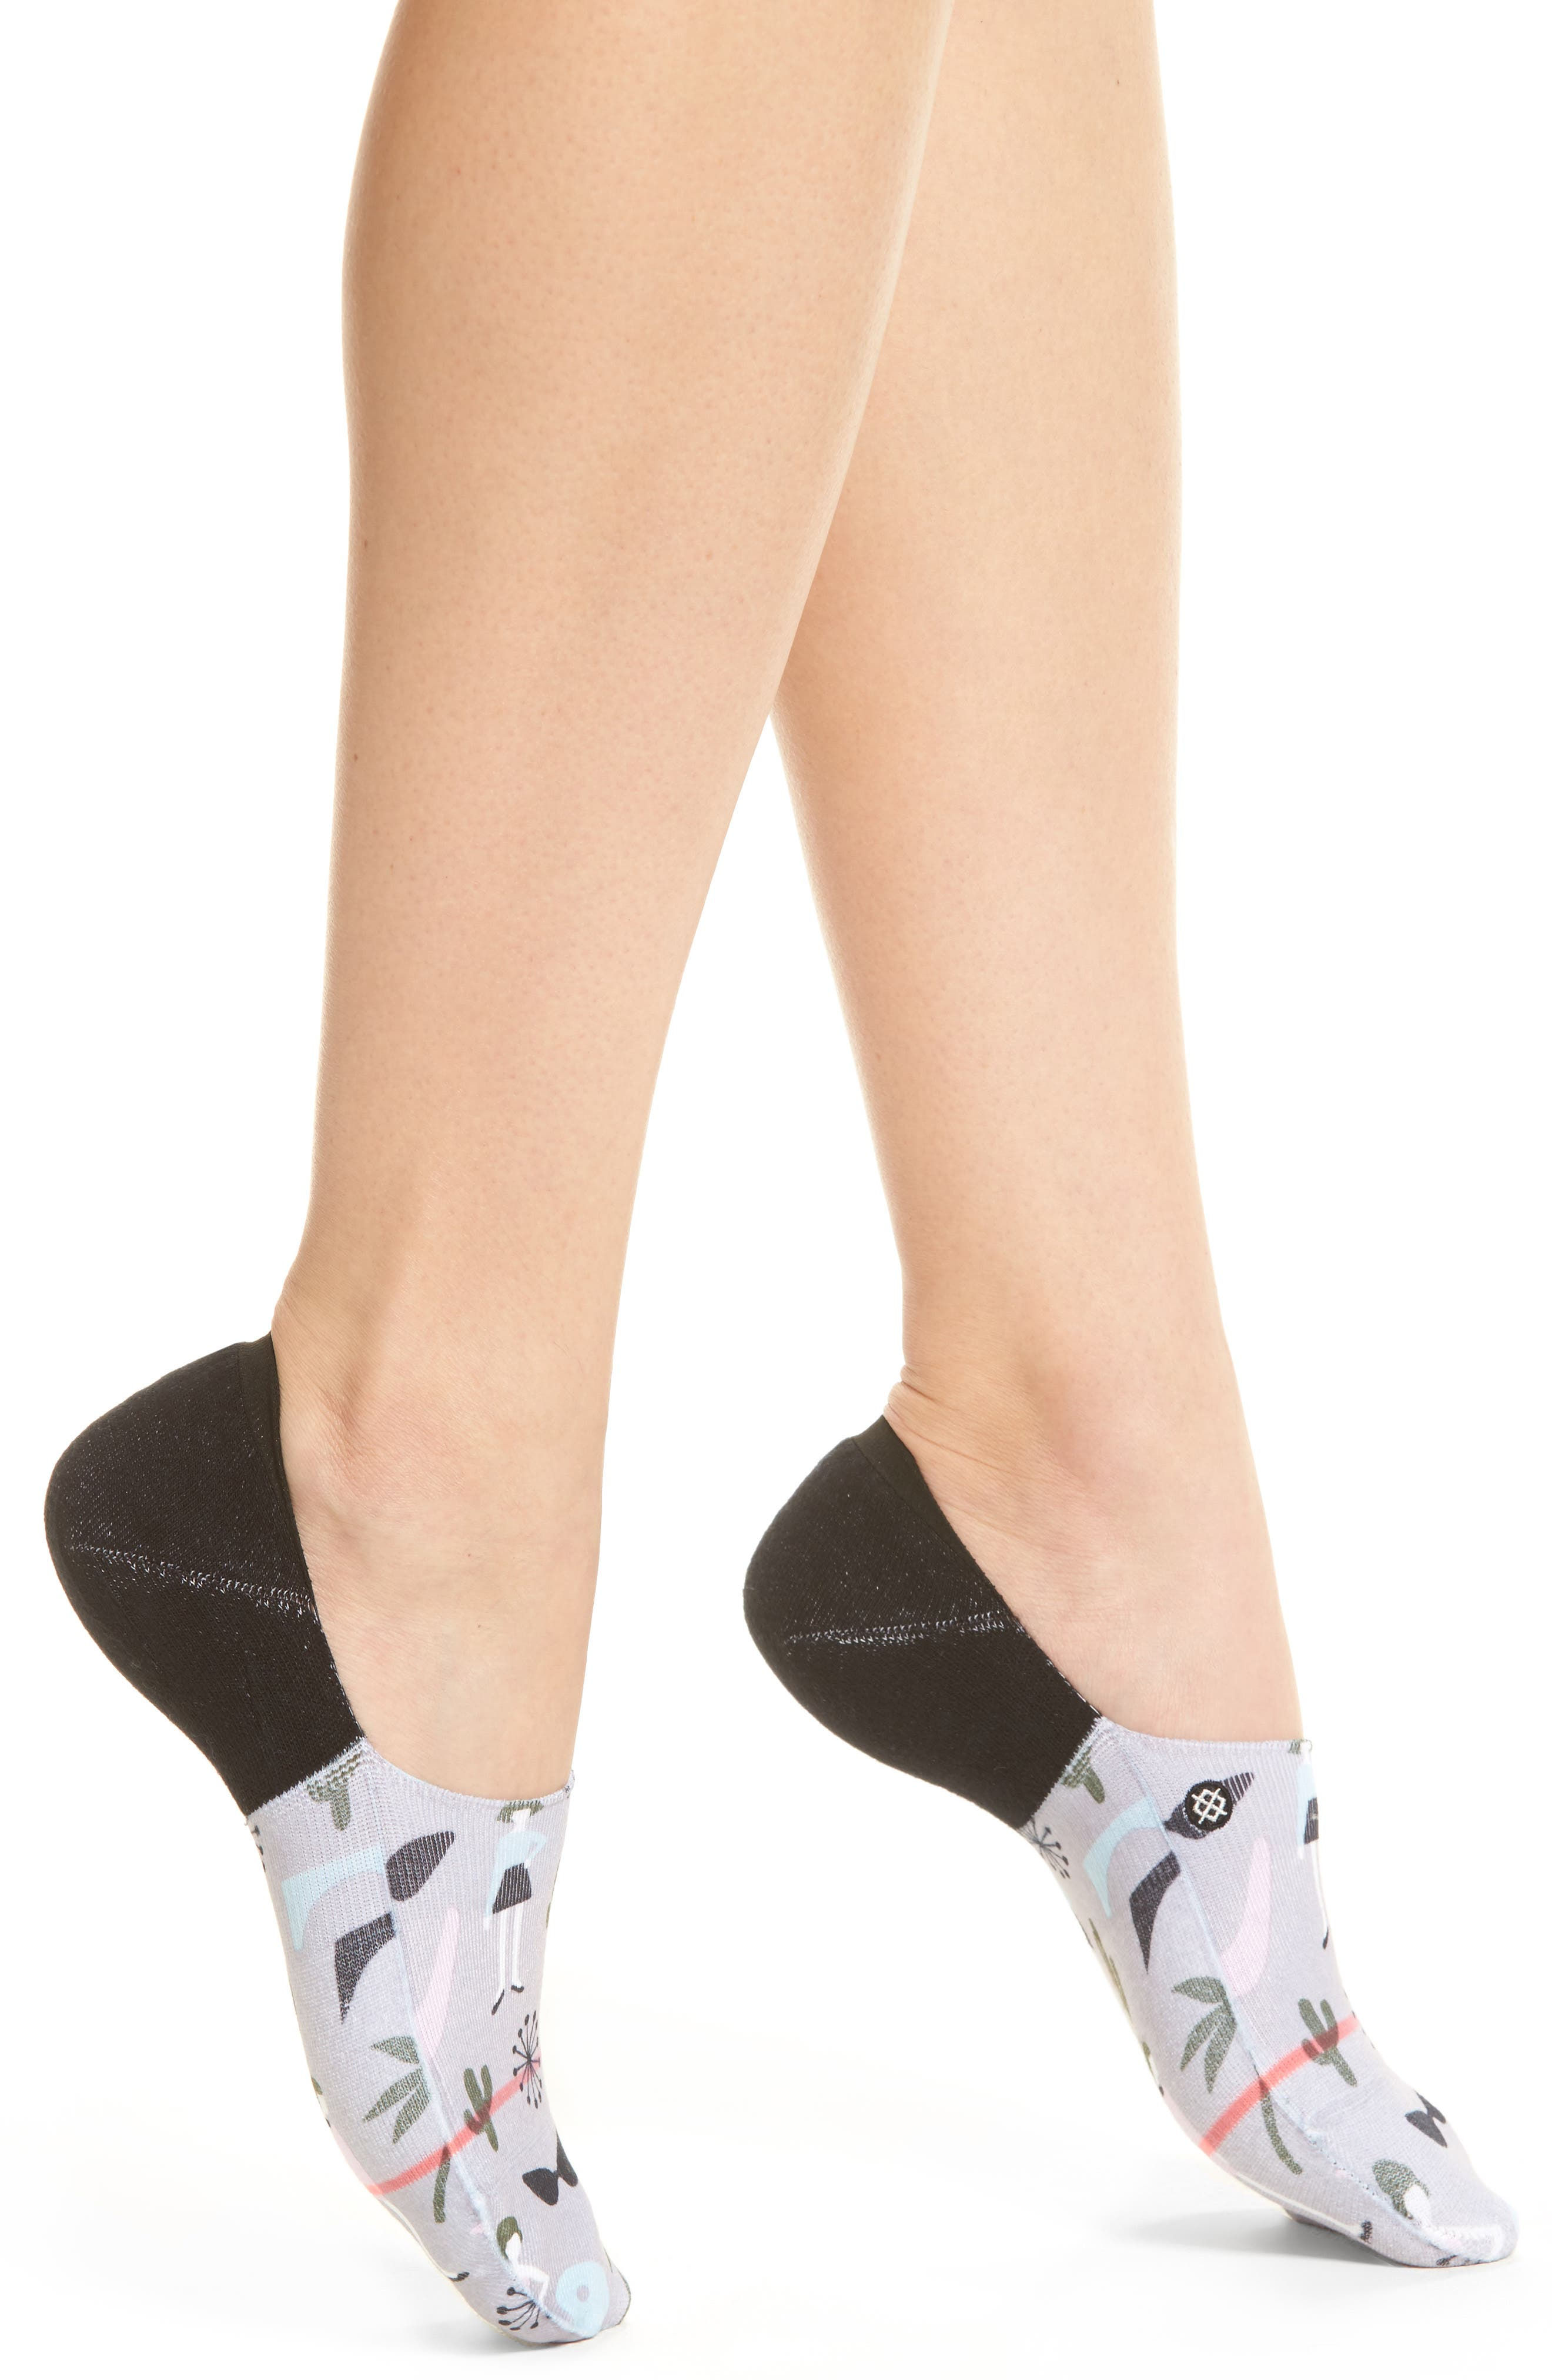 x Bijou Going Steady Super Invisible No-Show Socks,                         Main,                         color, GREY